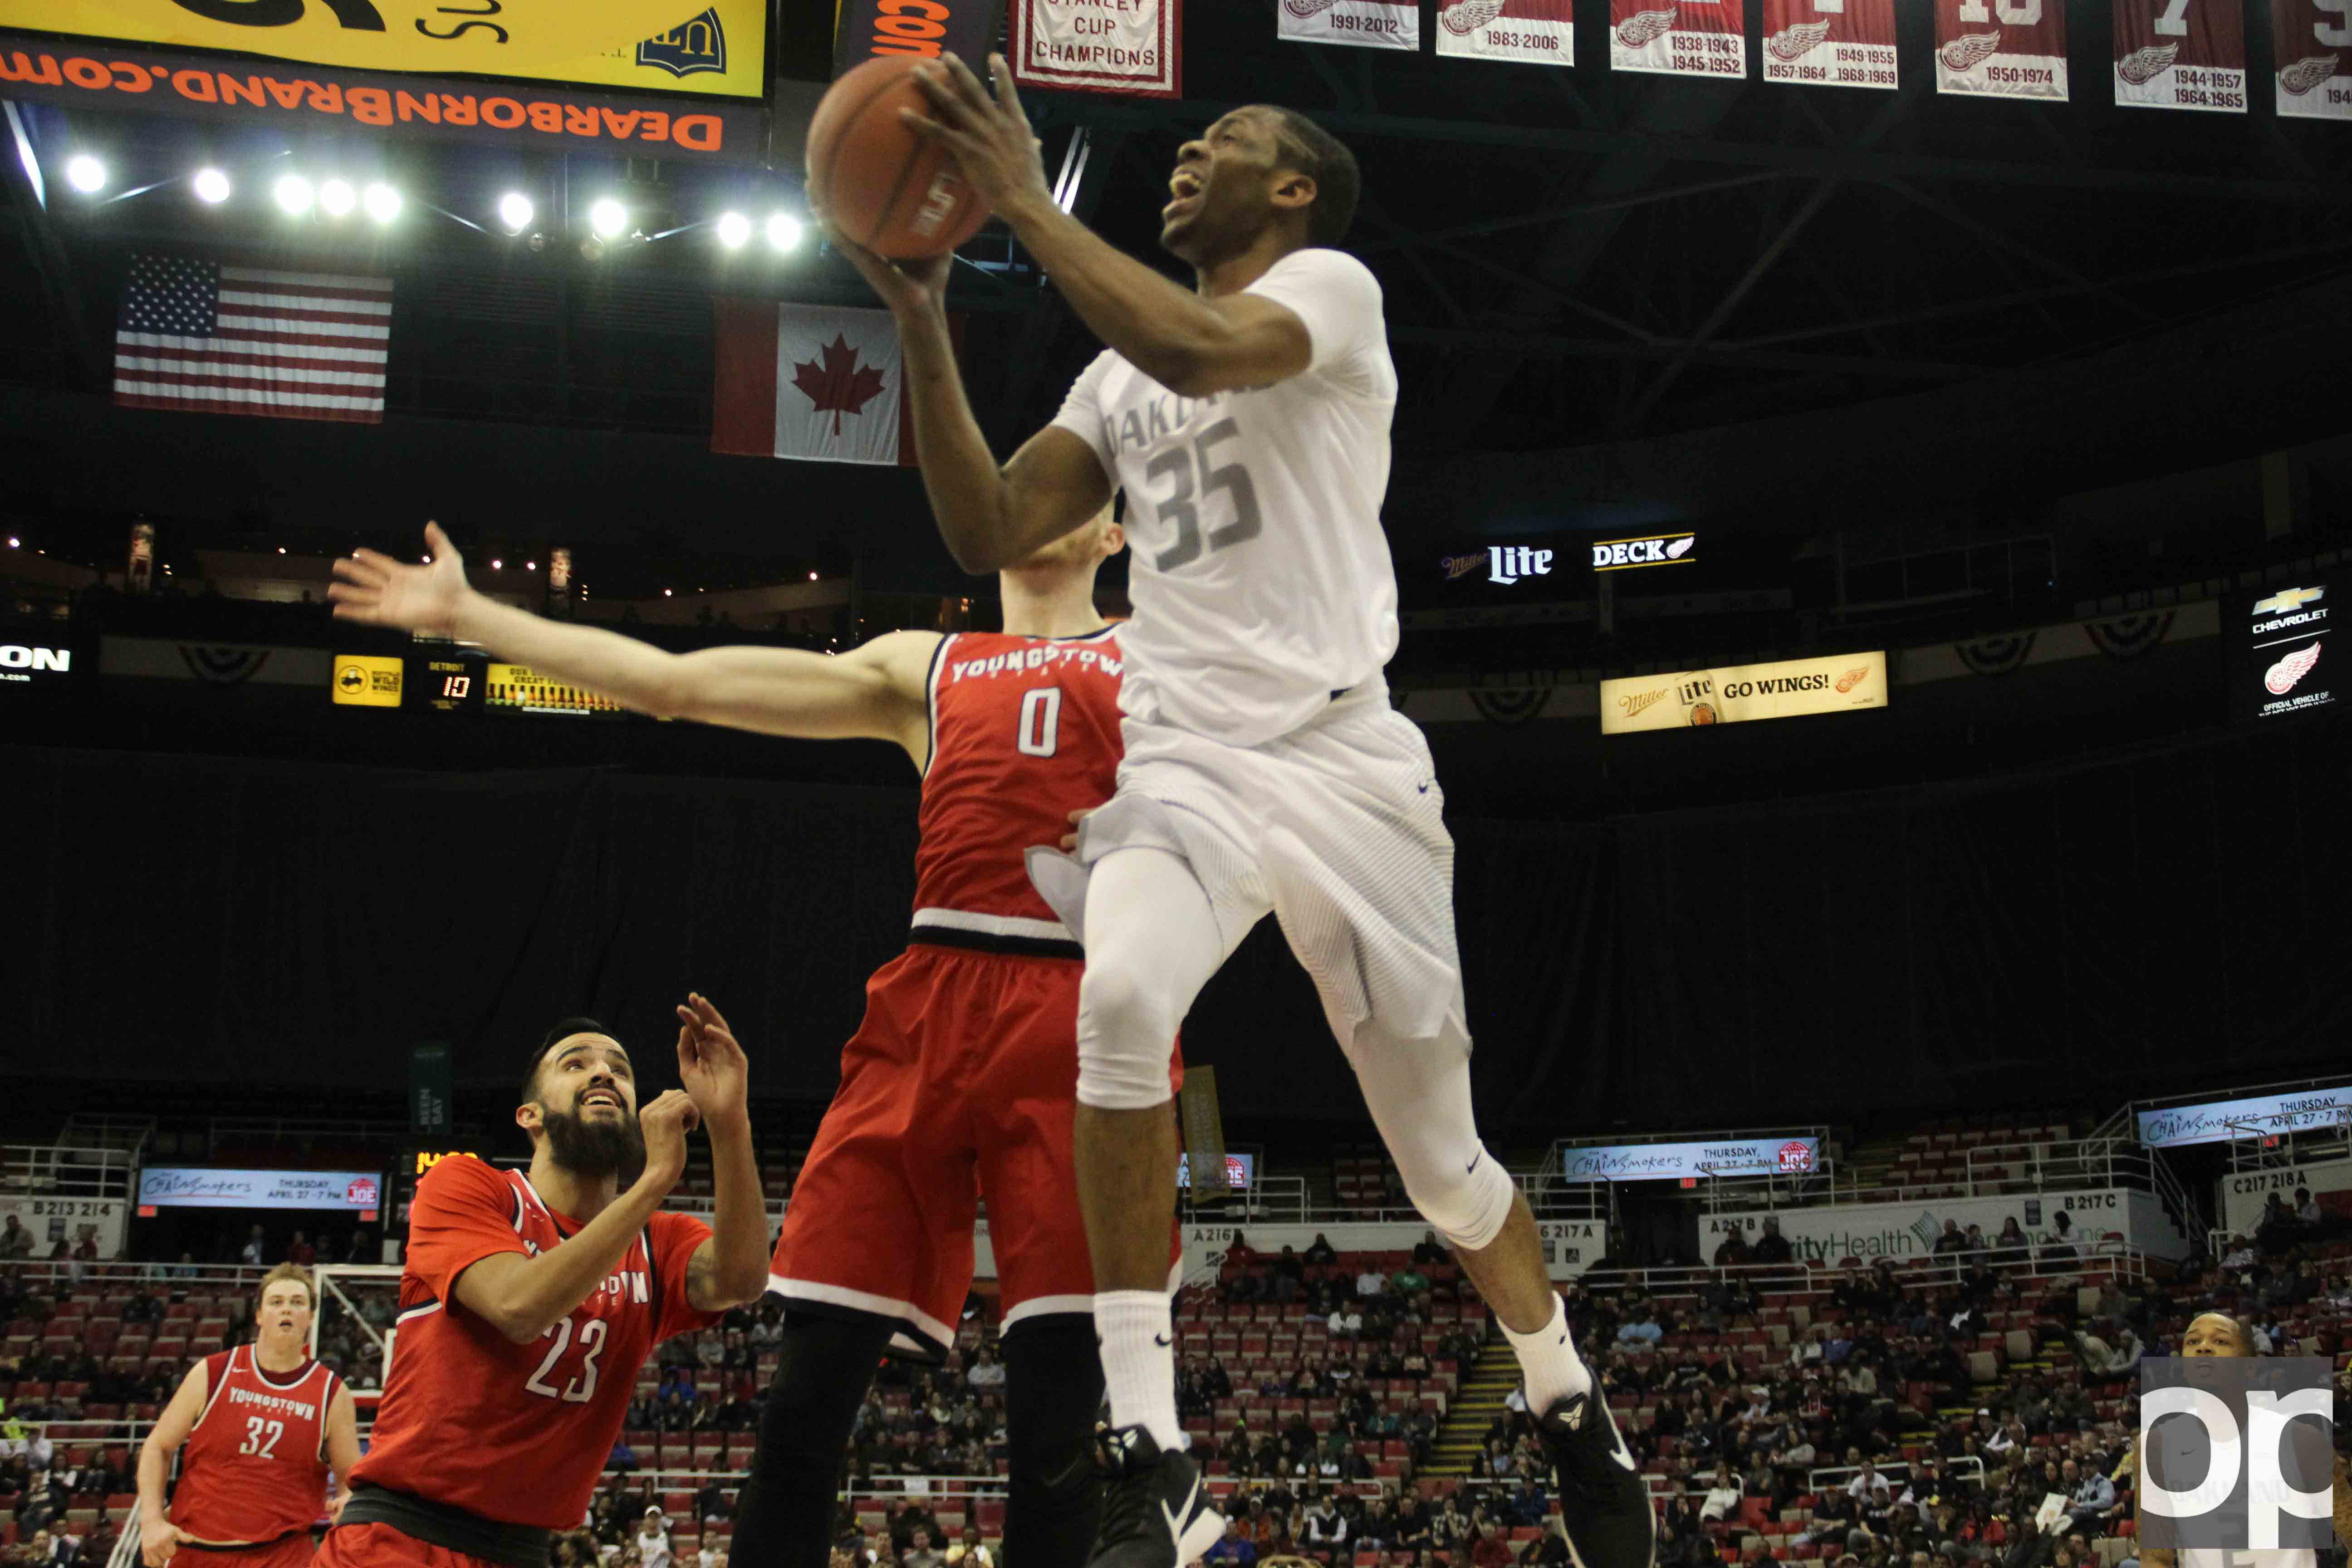 The Golden Grizzlies fell to the Penguins 81-80 in the Motor City Madness quarterfinals on March 4 at the Joe Louis Arena.